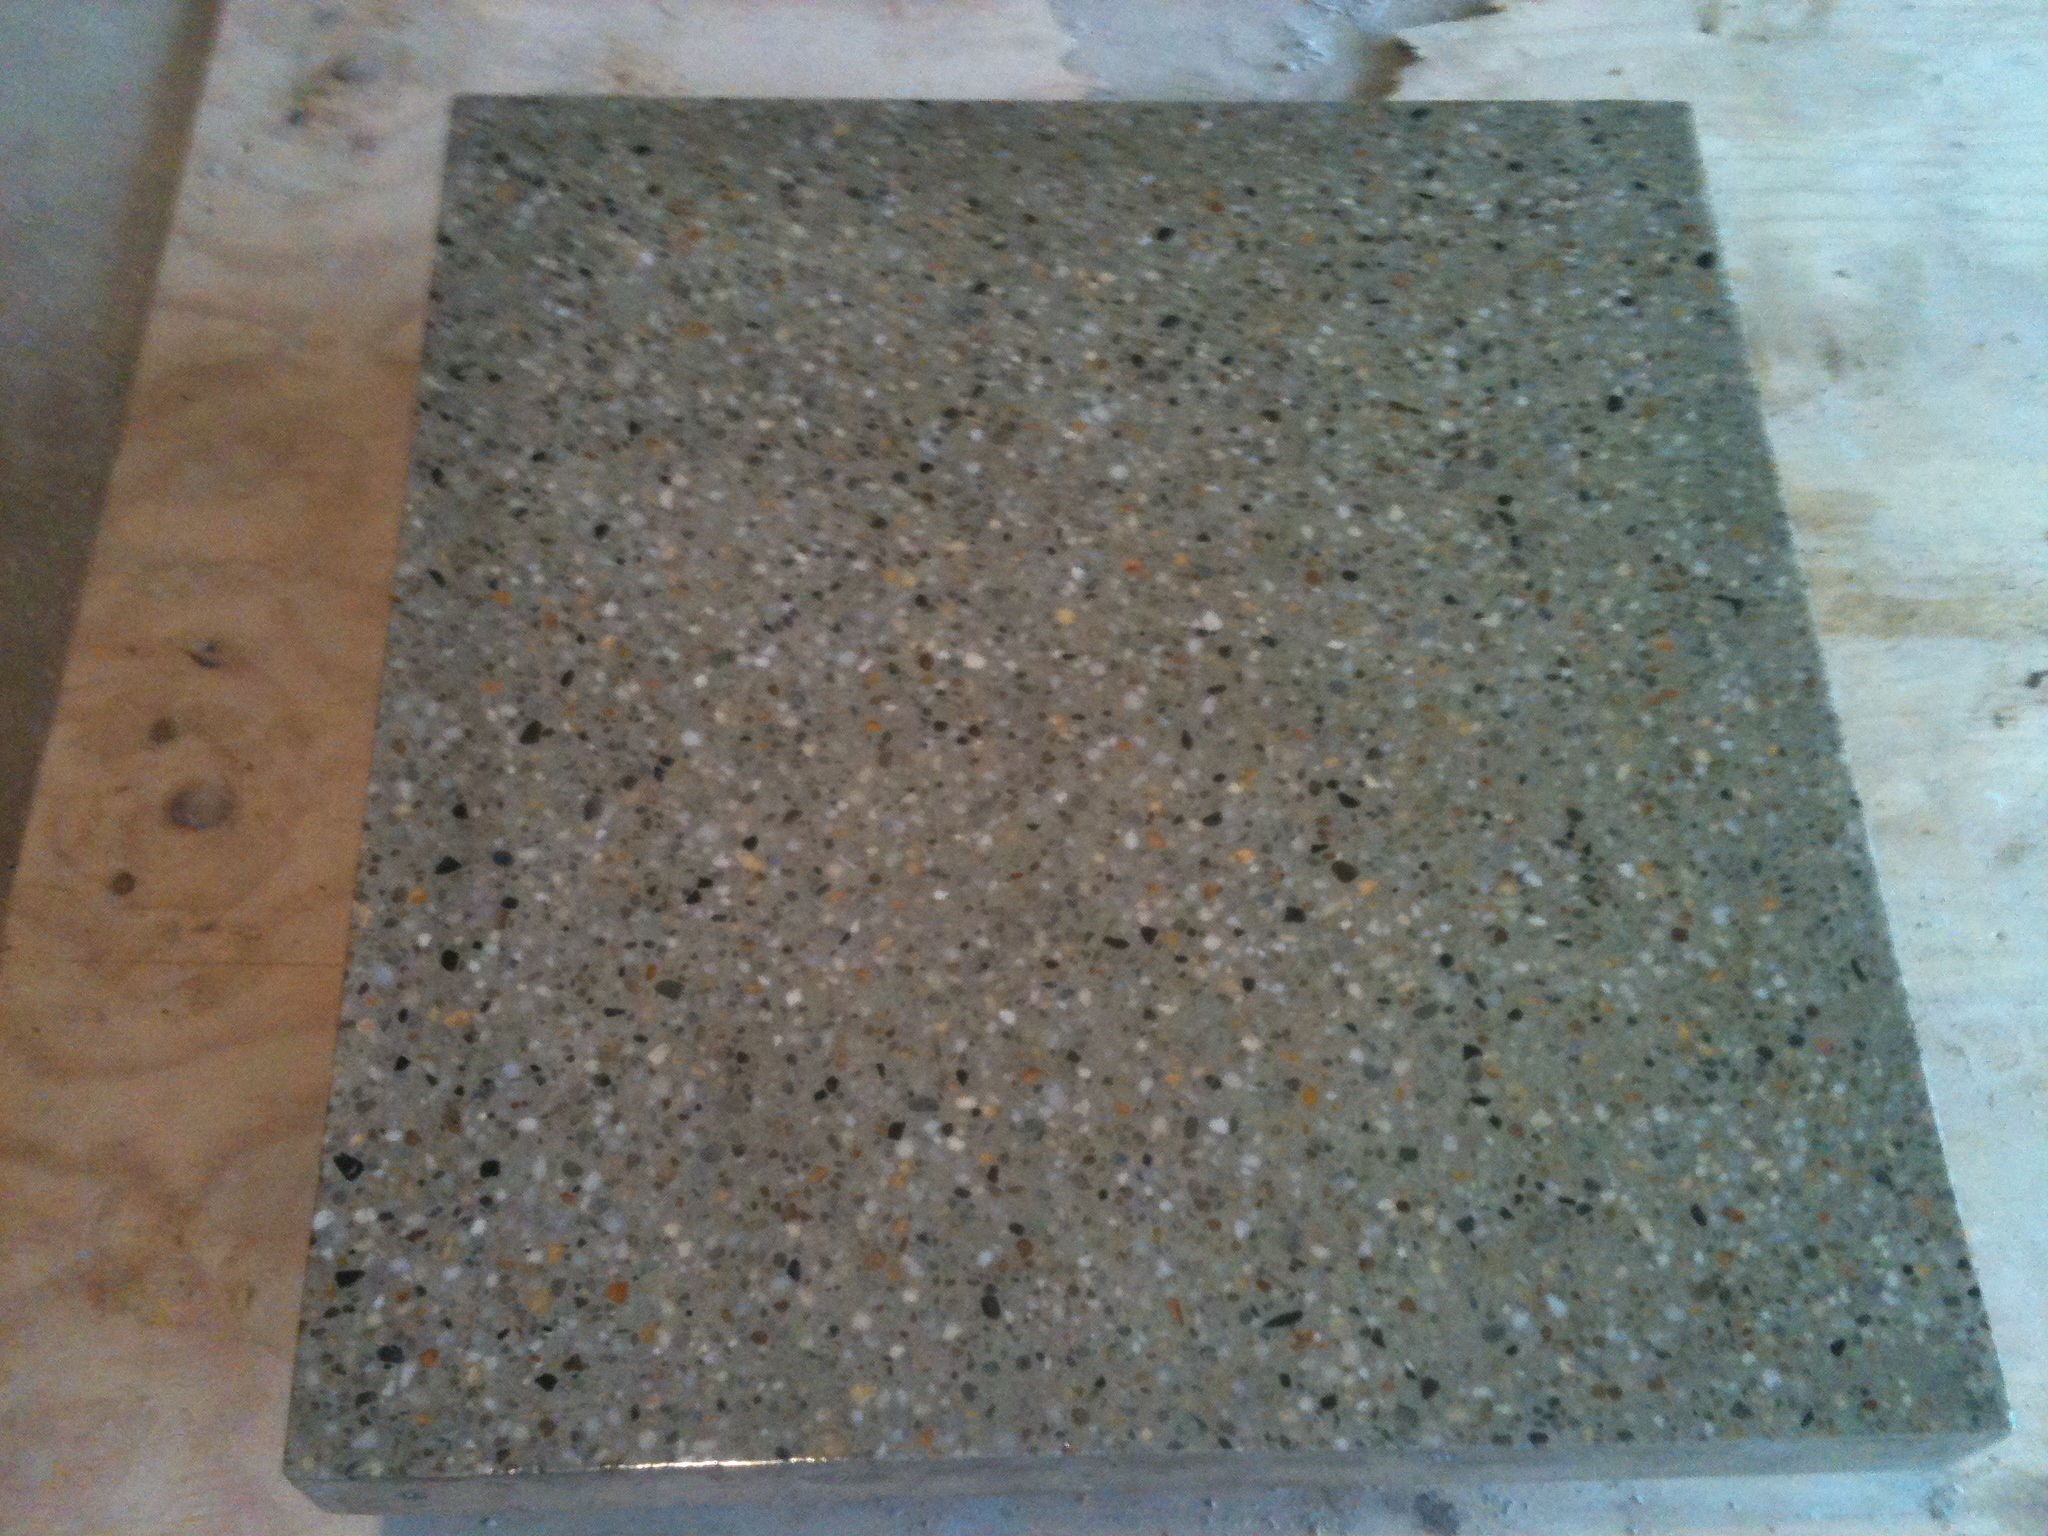 Bagged Concrete Mix 4000 : Where to buy suitable bag mix for concrete benchtop in